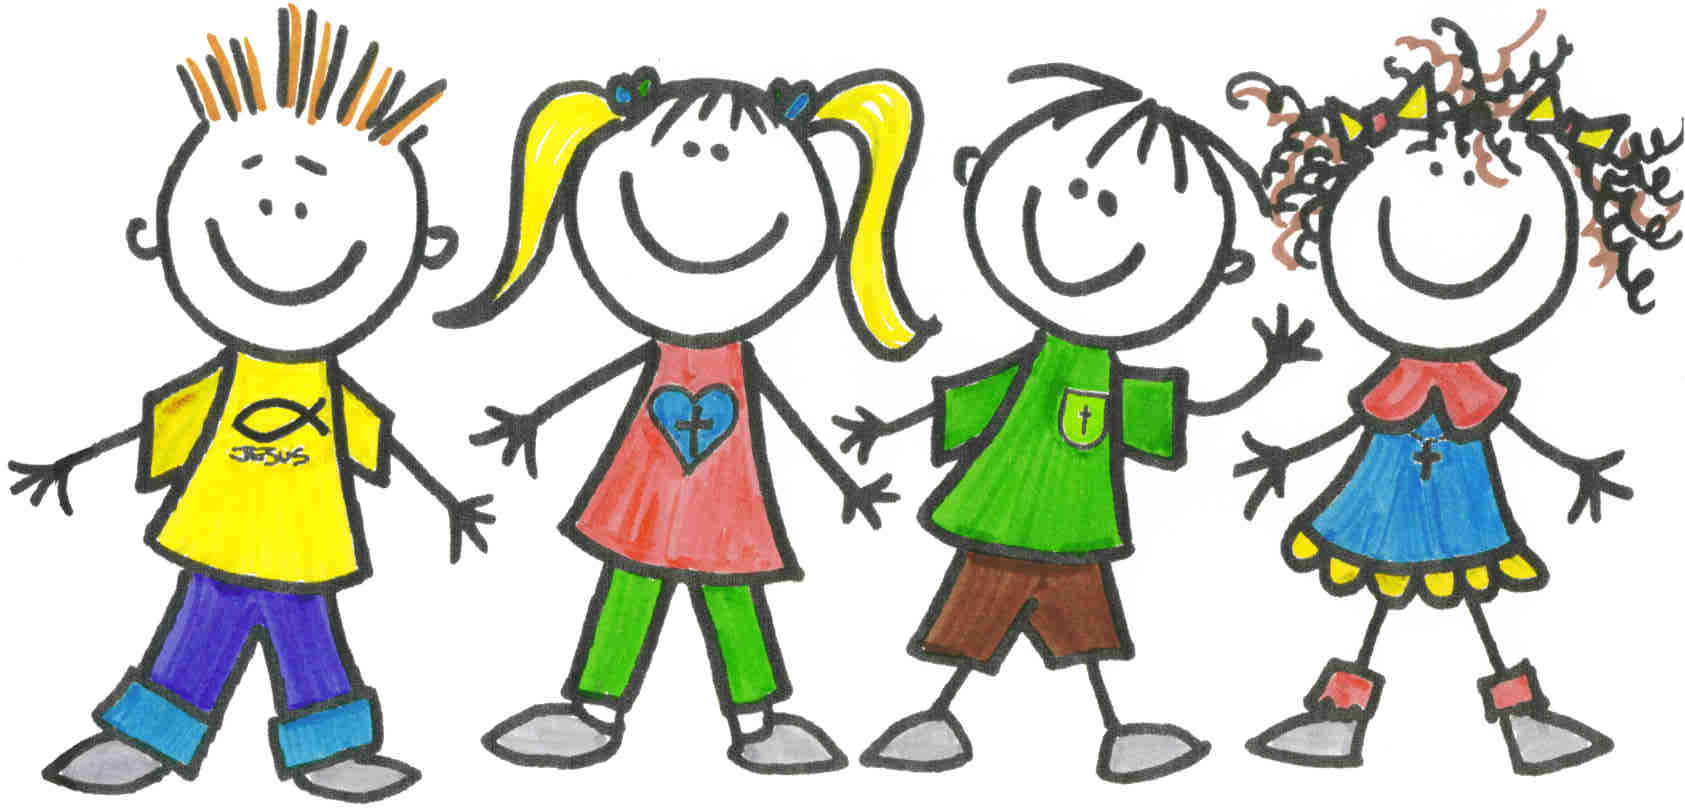 preschool clipart at getdrawings com free for personal use rh getdrawings com preschool clip art pictures preschool clipart of david and goliath